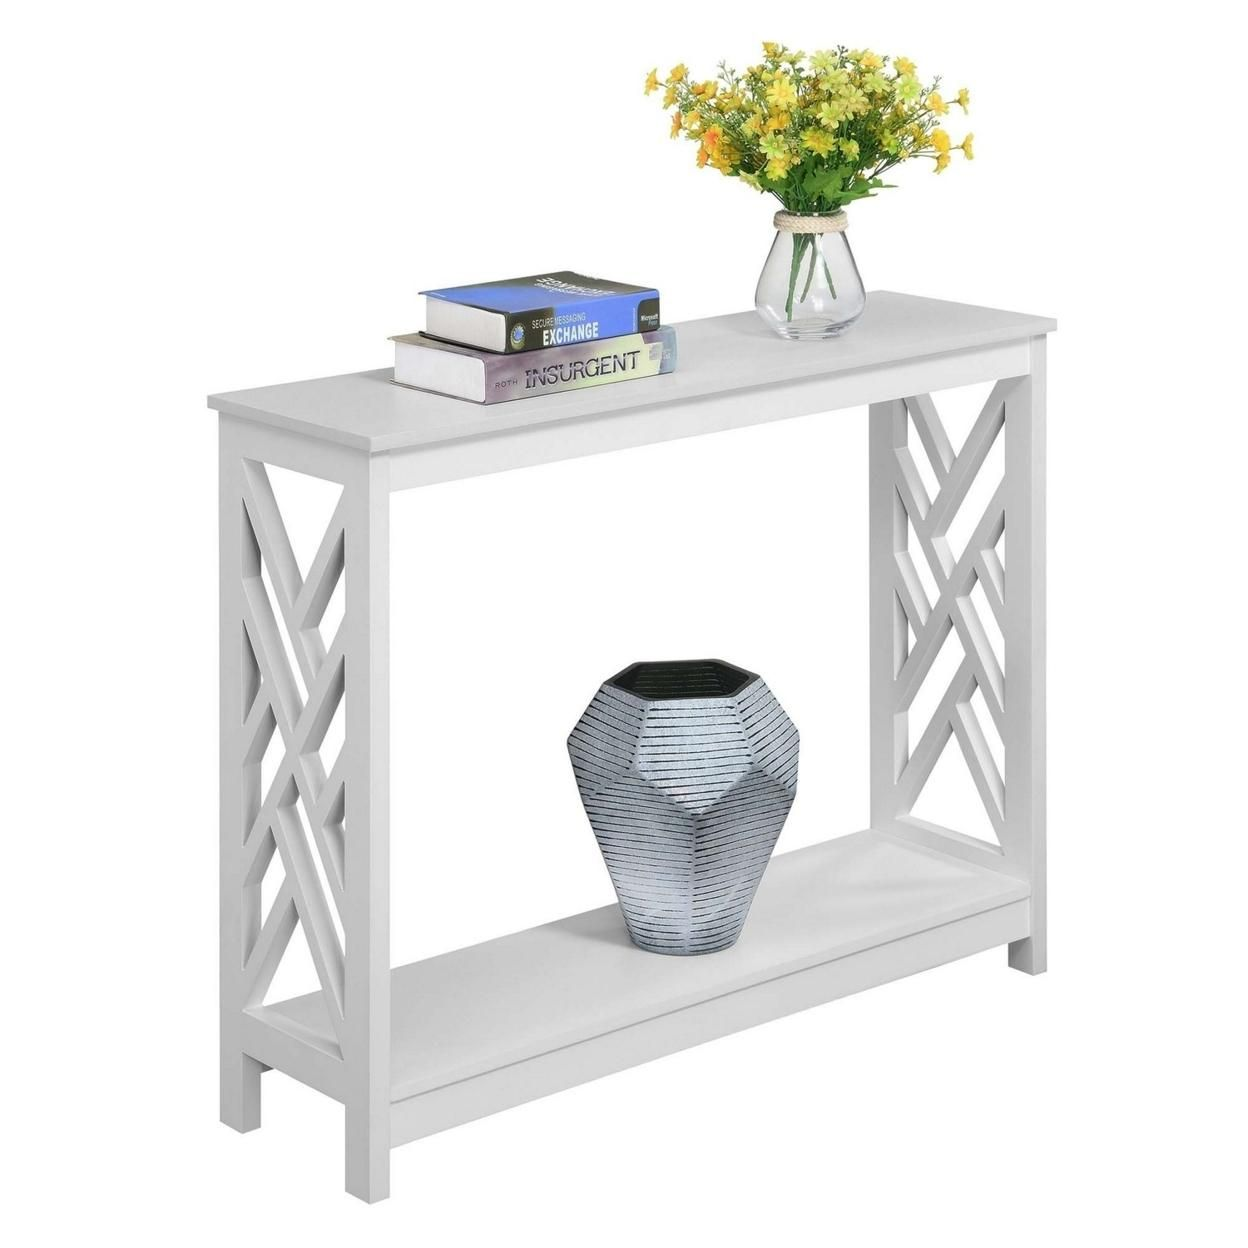 Titan Console Table with Shelf, White